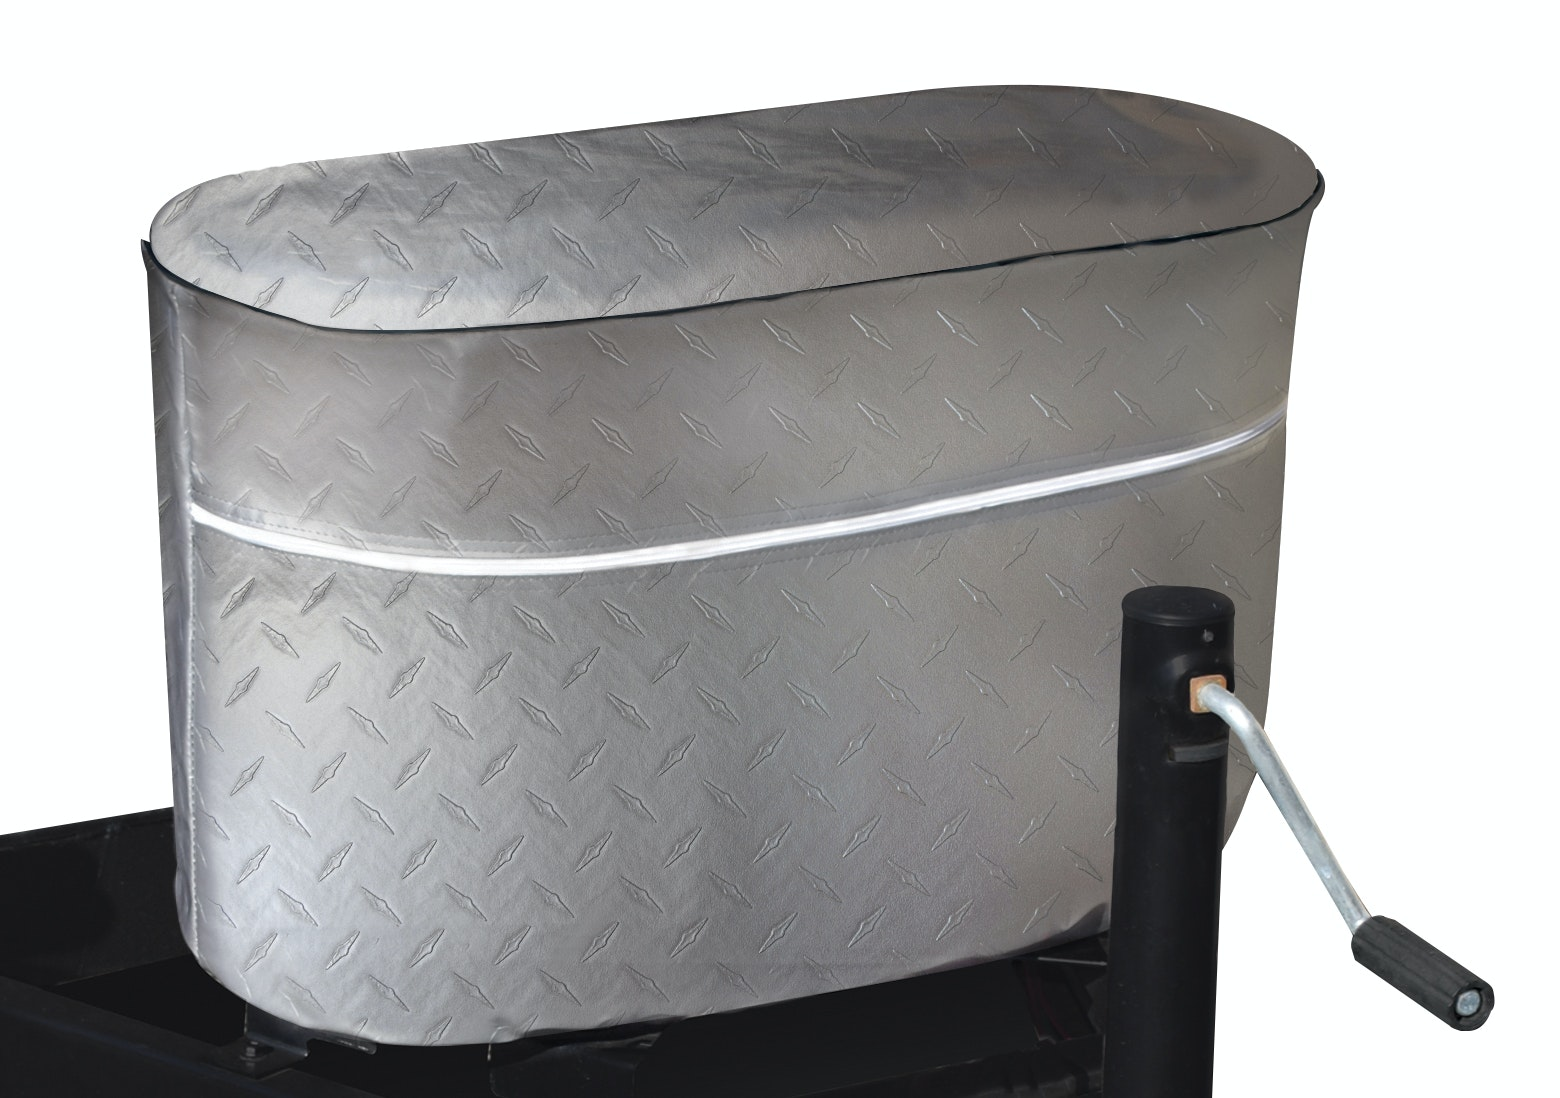 Product Image for Diamond Plated Propane Tank Cover for 20/5 Gallon Tank